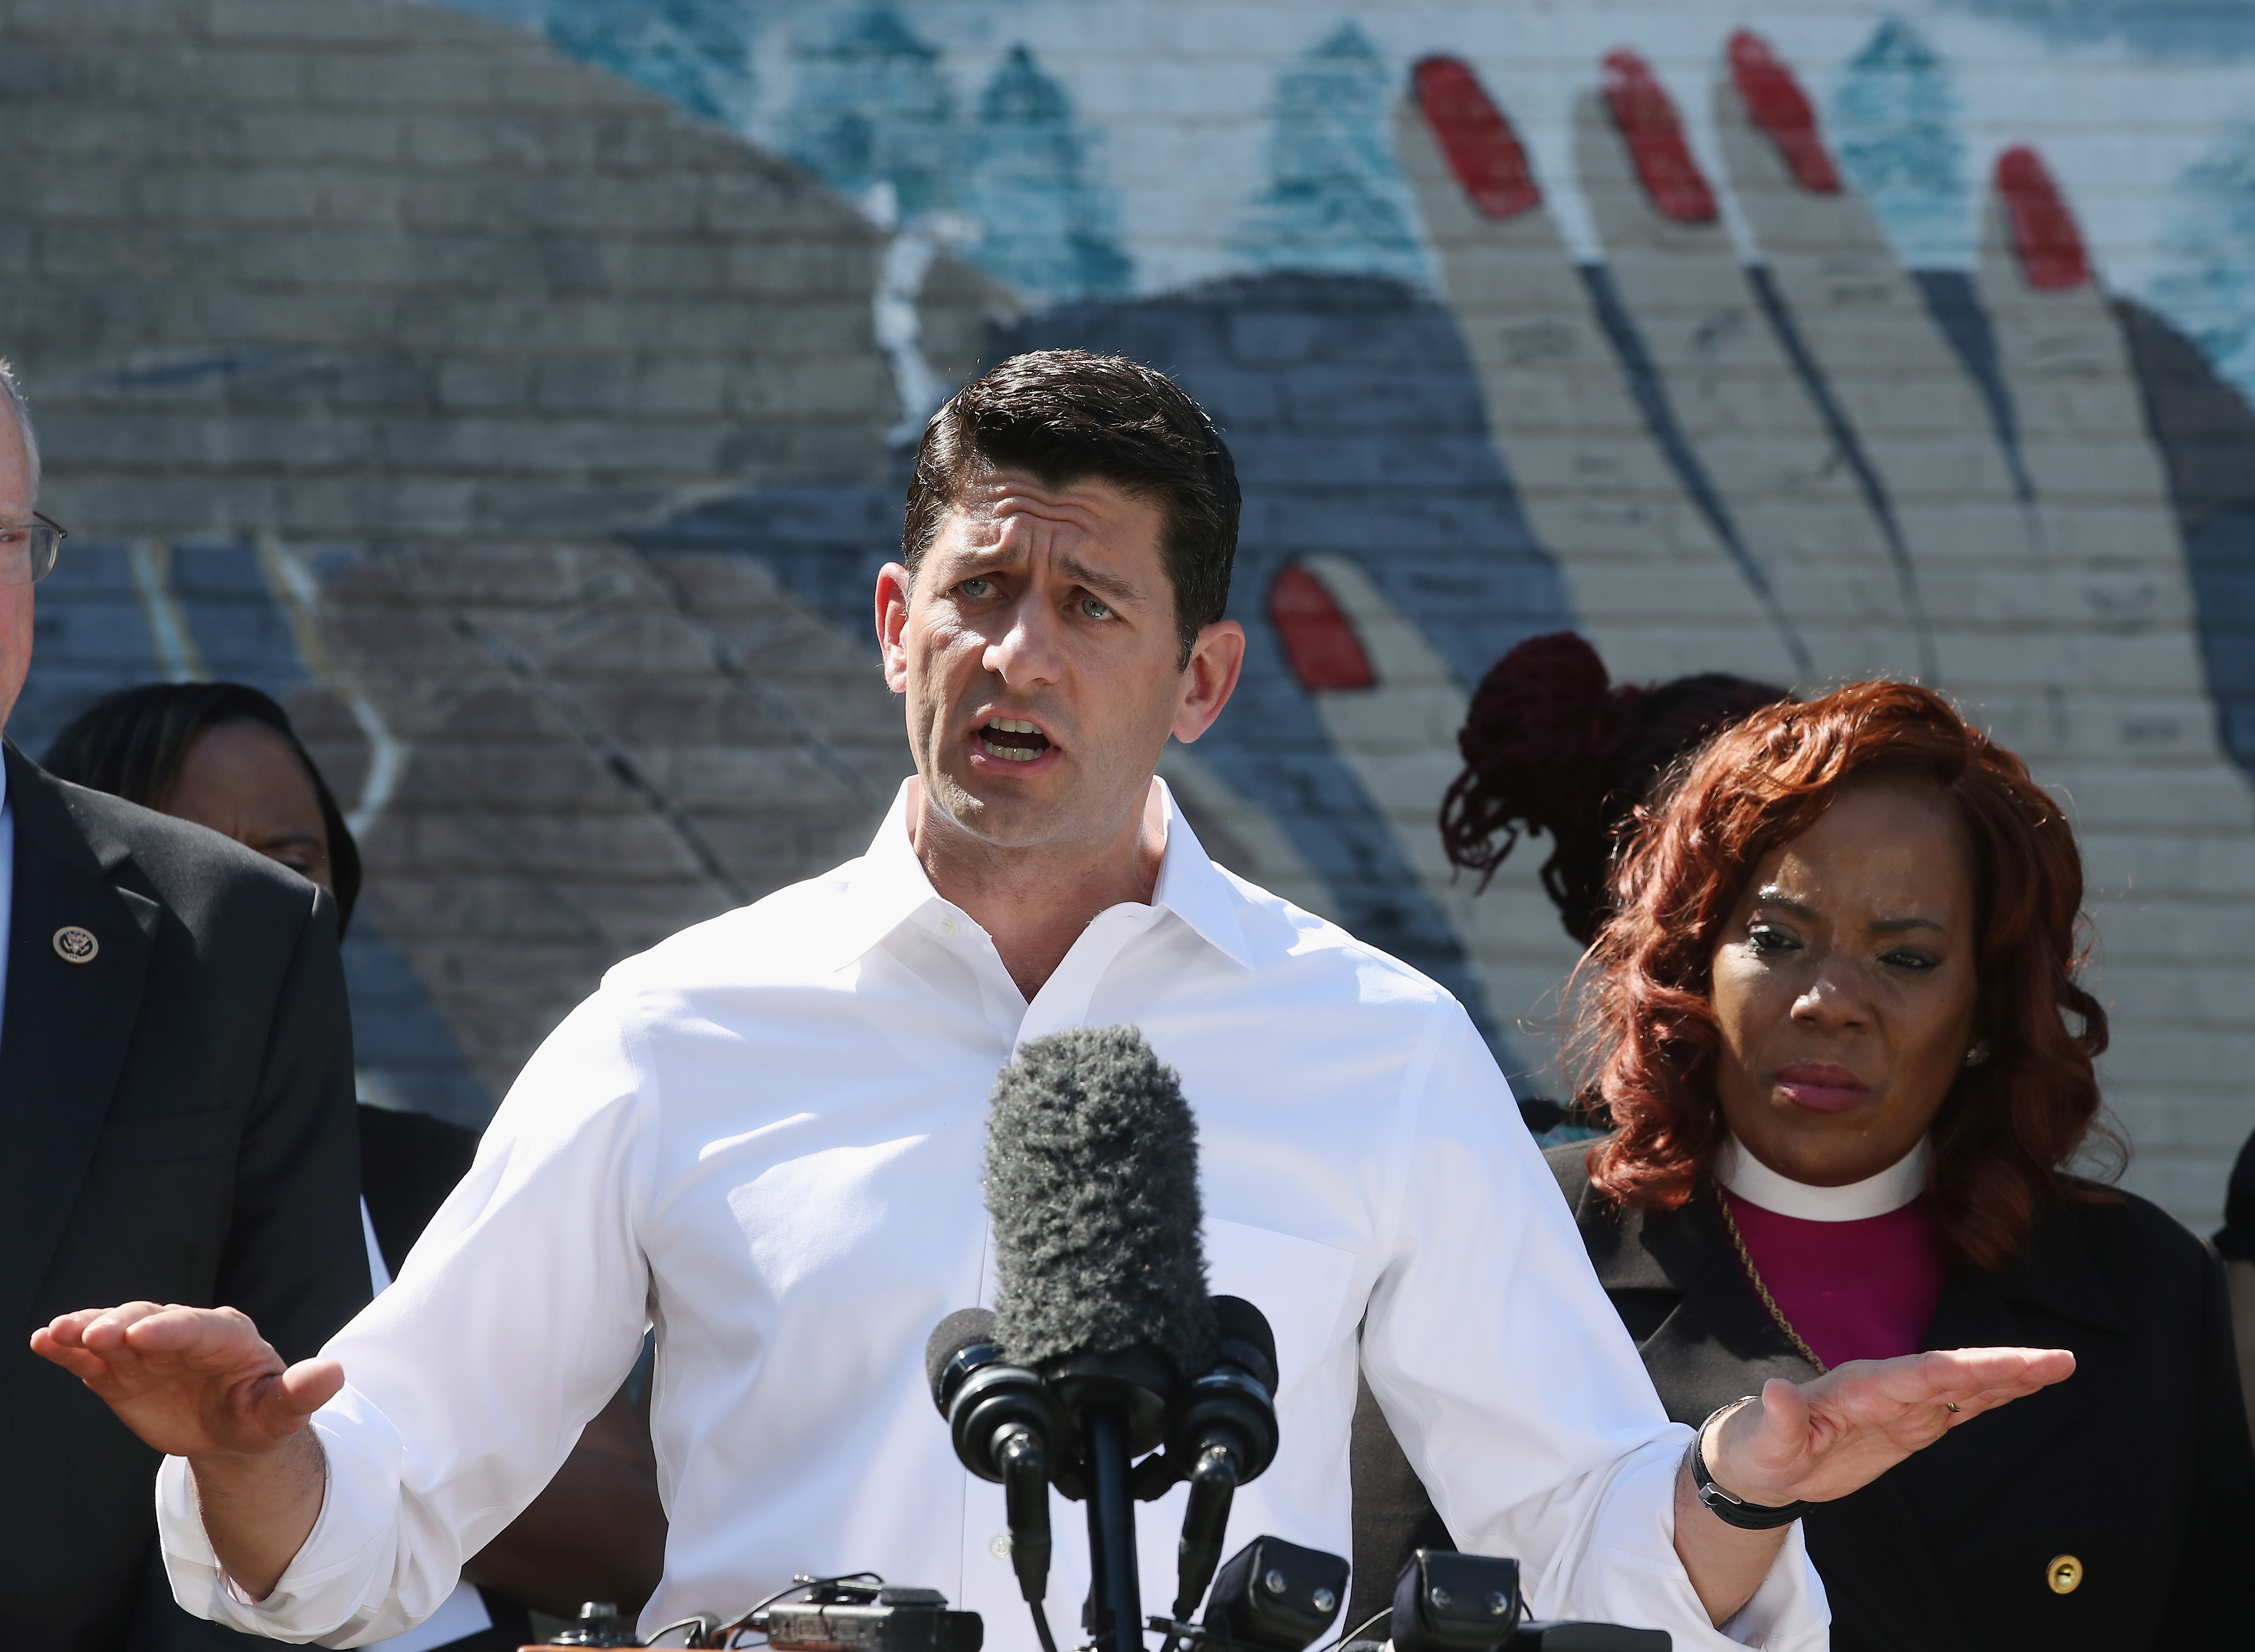 U.S. Speaker of the House Paul Ryan (R-WI), speaks while flanked by Bishop Shirley Holloway at the Graceview Apartments, June 7, 2016 in Washington, DC.